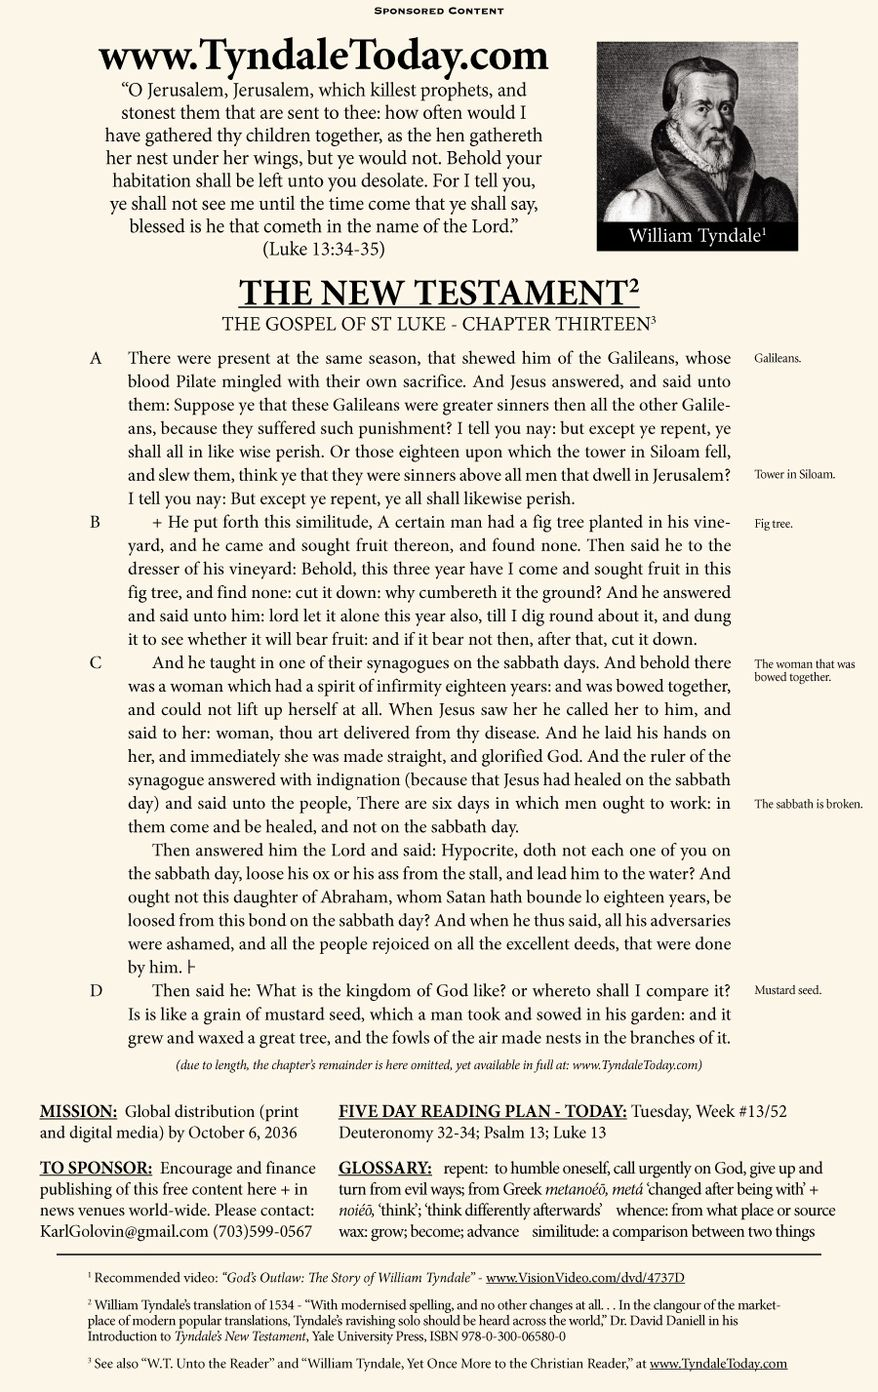 A daily reading of William Tyndale's 1534 translation of The New Testament from Tyndale Today. (Sponsored content March 28, 2017 in The Washington Times)